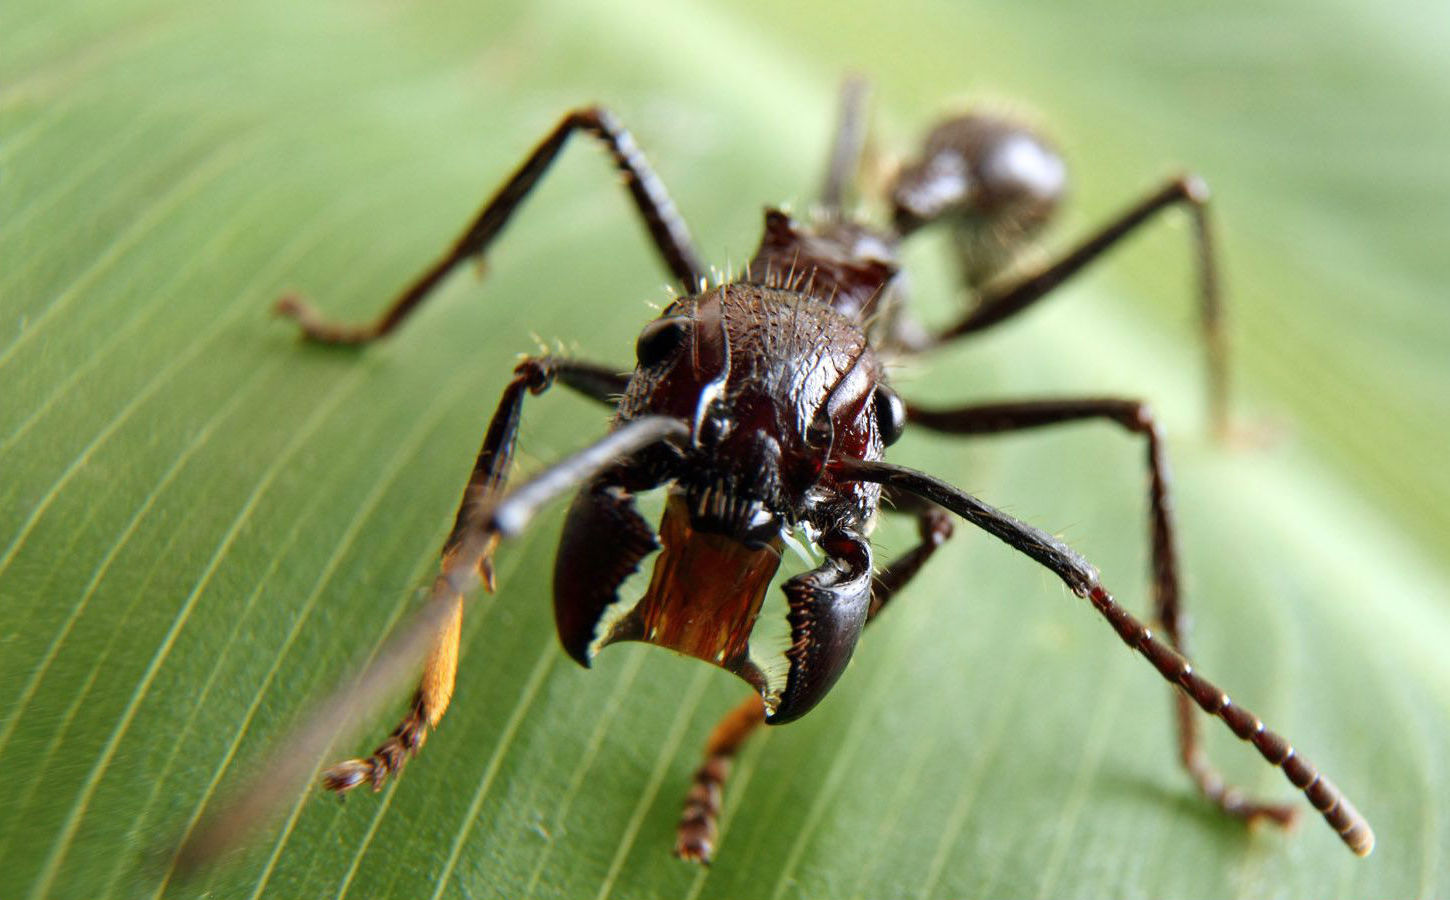 Bullet Ants | The Deadliest Insects In The World | Brain Berries